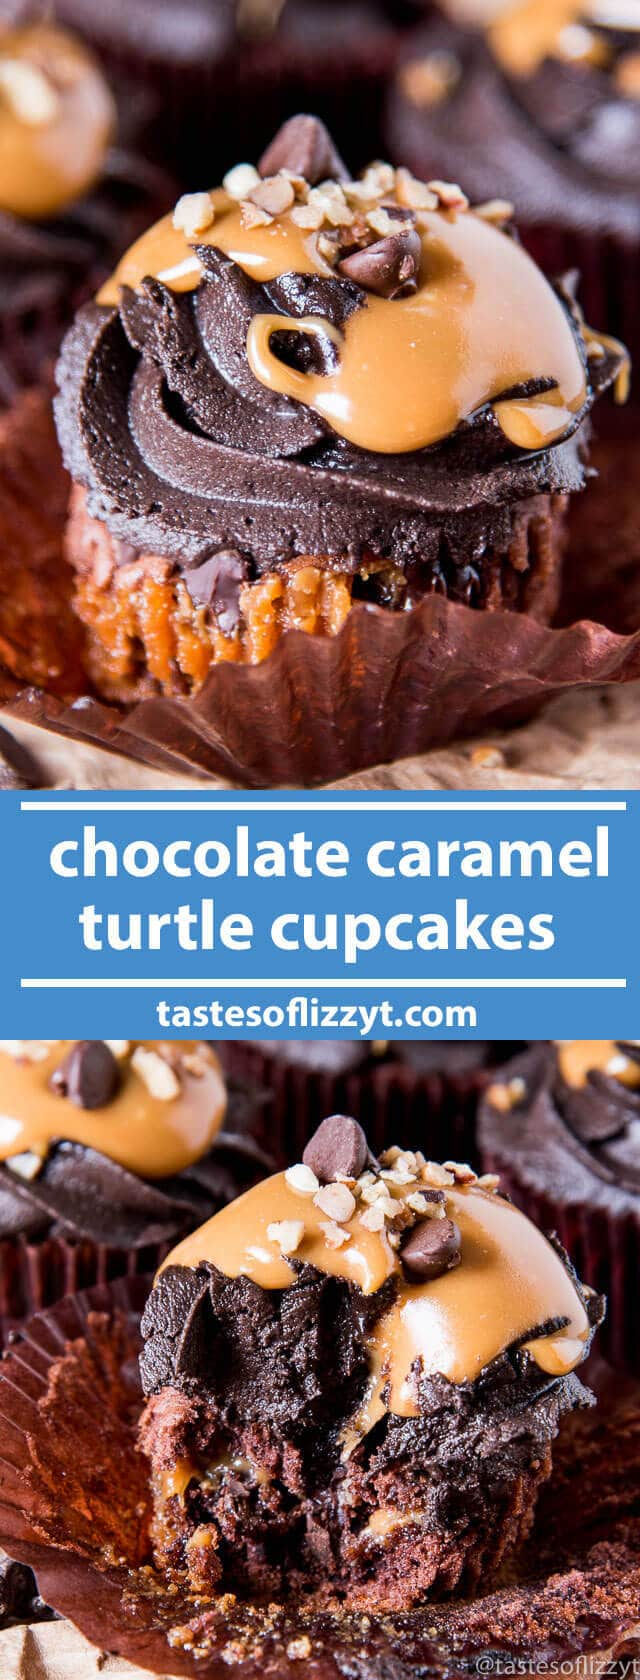 Chocolate Caramel Turtle Cupcakes have creamy caramel, chocolate chips and pecans on the inside and are topped with chocolate buttercream. They have an unbeatable fudgy, brownie-like flavor and texture. easy cupcake recipe / caramel cupcakes / semi-homemade cupcake recipe